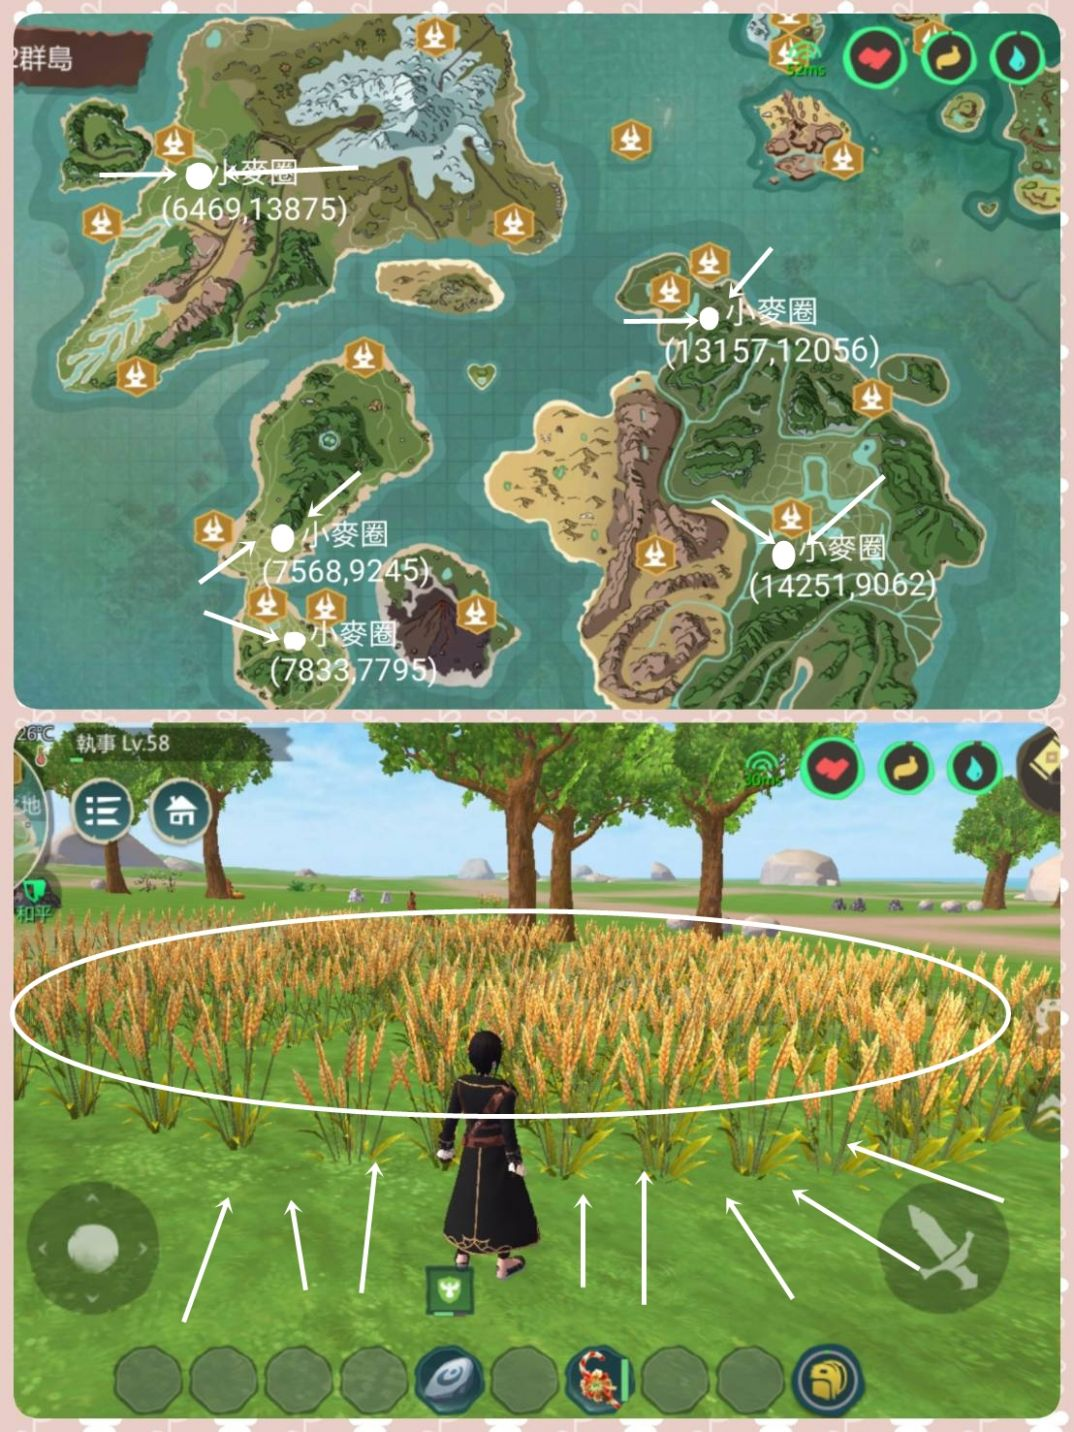 Wheat Location and Cooking Pot Recipes Utopia: Origin - Hitzer Gaming - Cooking Recipes Utopia Origin